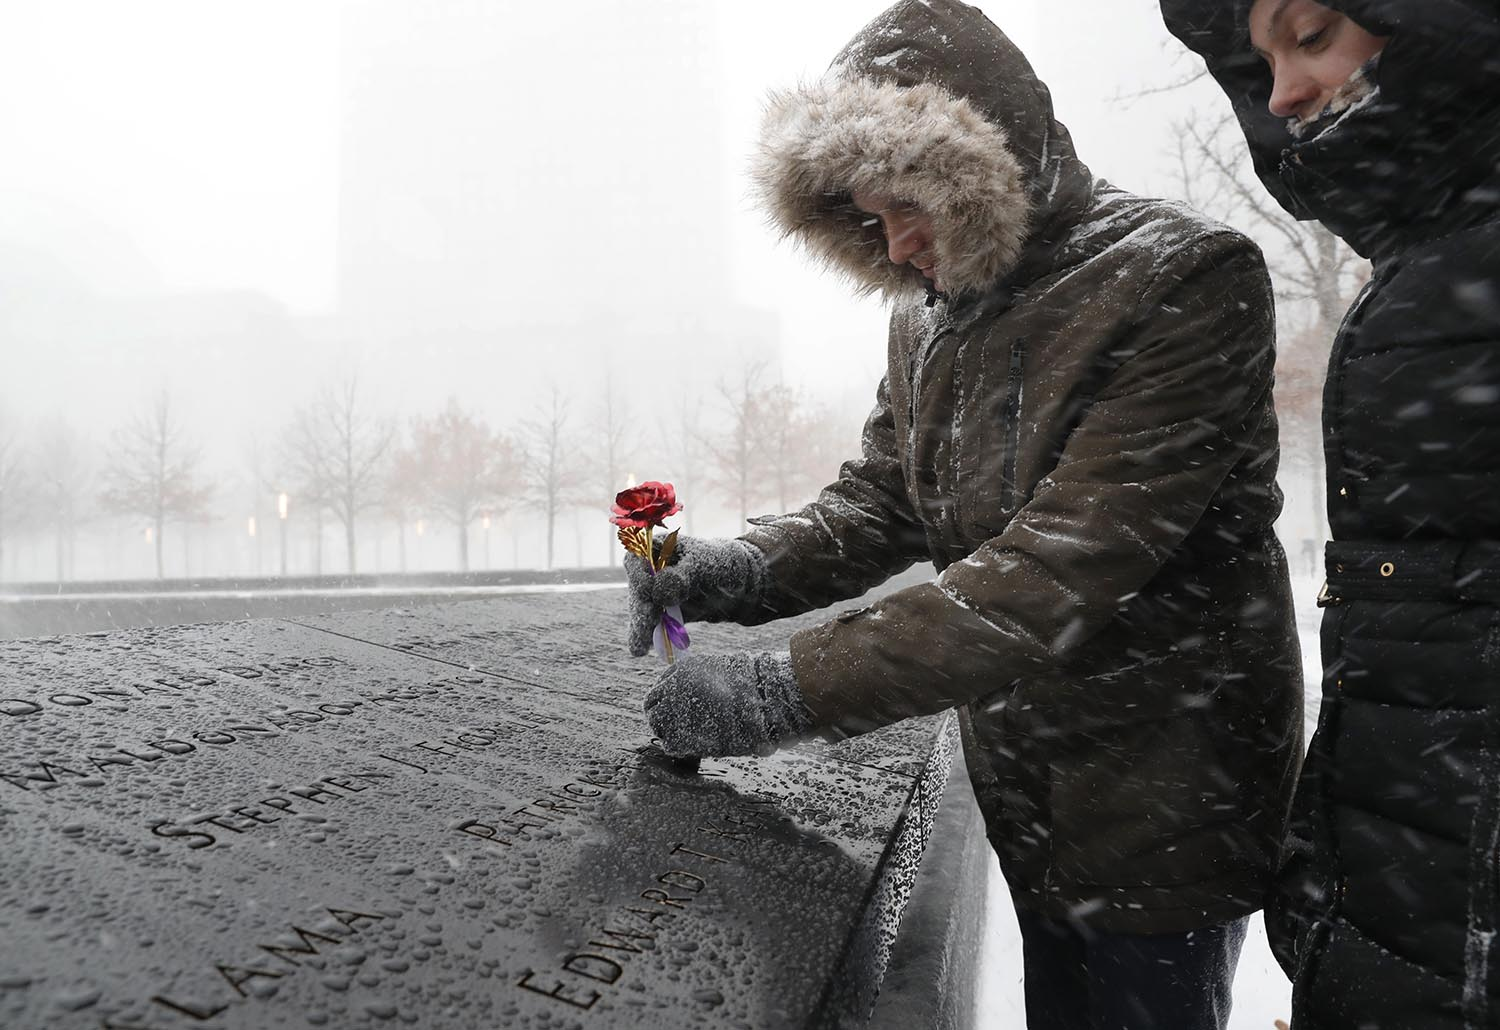 "<div class=""meta image-caption""><div class=""origin-logo origin-image ap""><span>AP</span></div><span class=""caption-text"">Tara Chandler, right, watches her husband Joshua place a metal rose on the border of one of the fountains at the National September 11 Memorial and Museum in New York, Jan 4, 2018. (AP Photo/Kathy Willens)</span></div>"